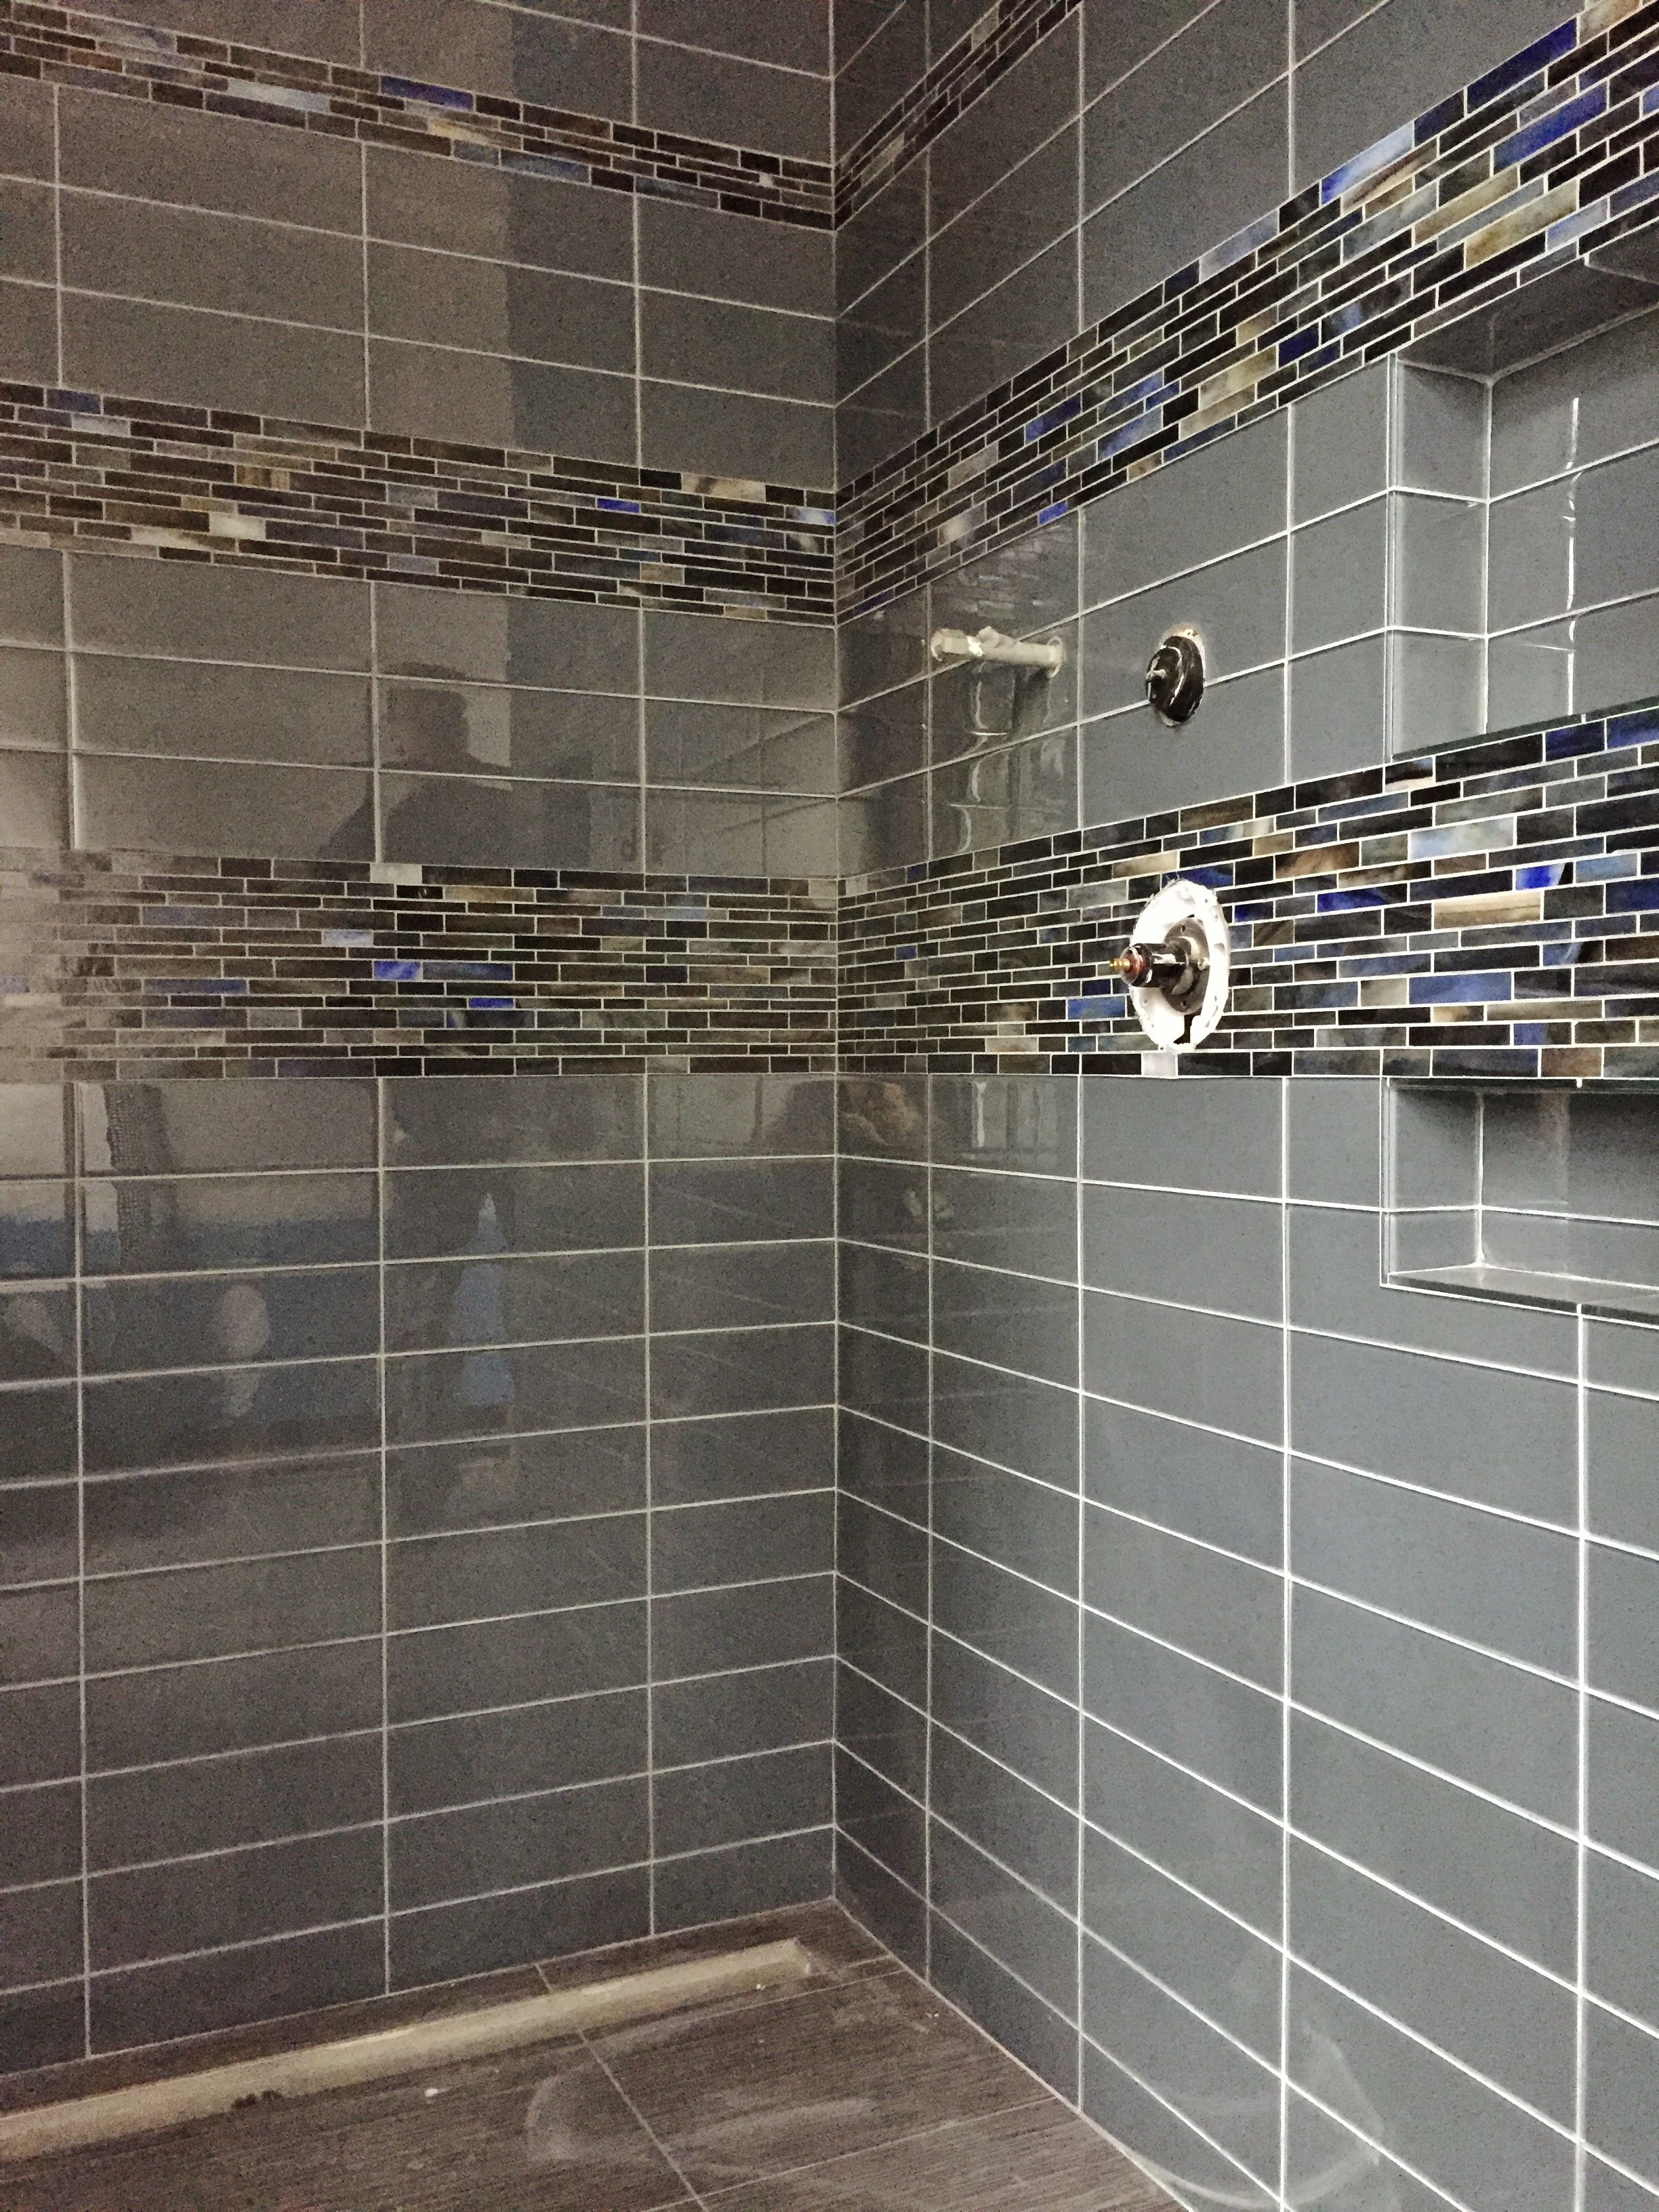 4x12 Glass Tile With Glass Accent Band Around Shower Linear Drain At Floor Daniel Island Sc Tile Layout Master Bath Tile Installing Hardwood Floors